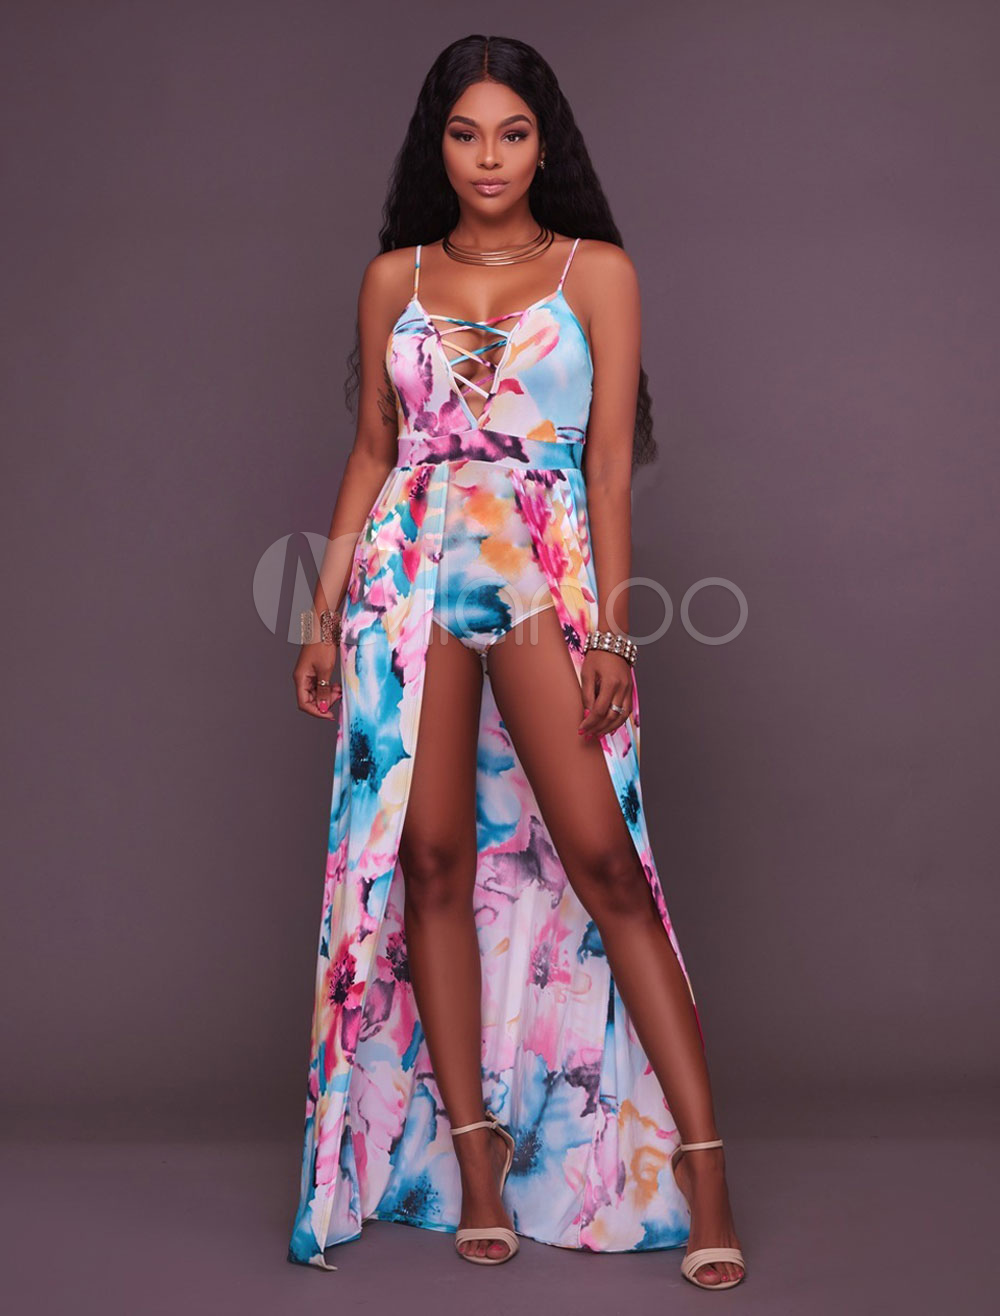 Buy Women Romper Dress Straps Cut Out Floral Print Backless Summer Playsuit for $30.59 in Milanoo store